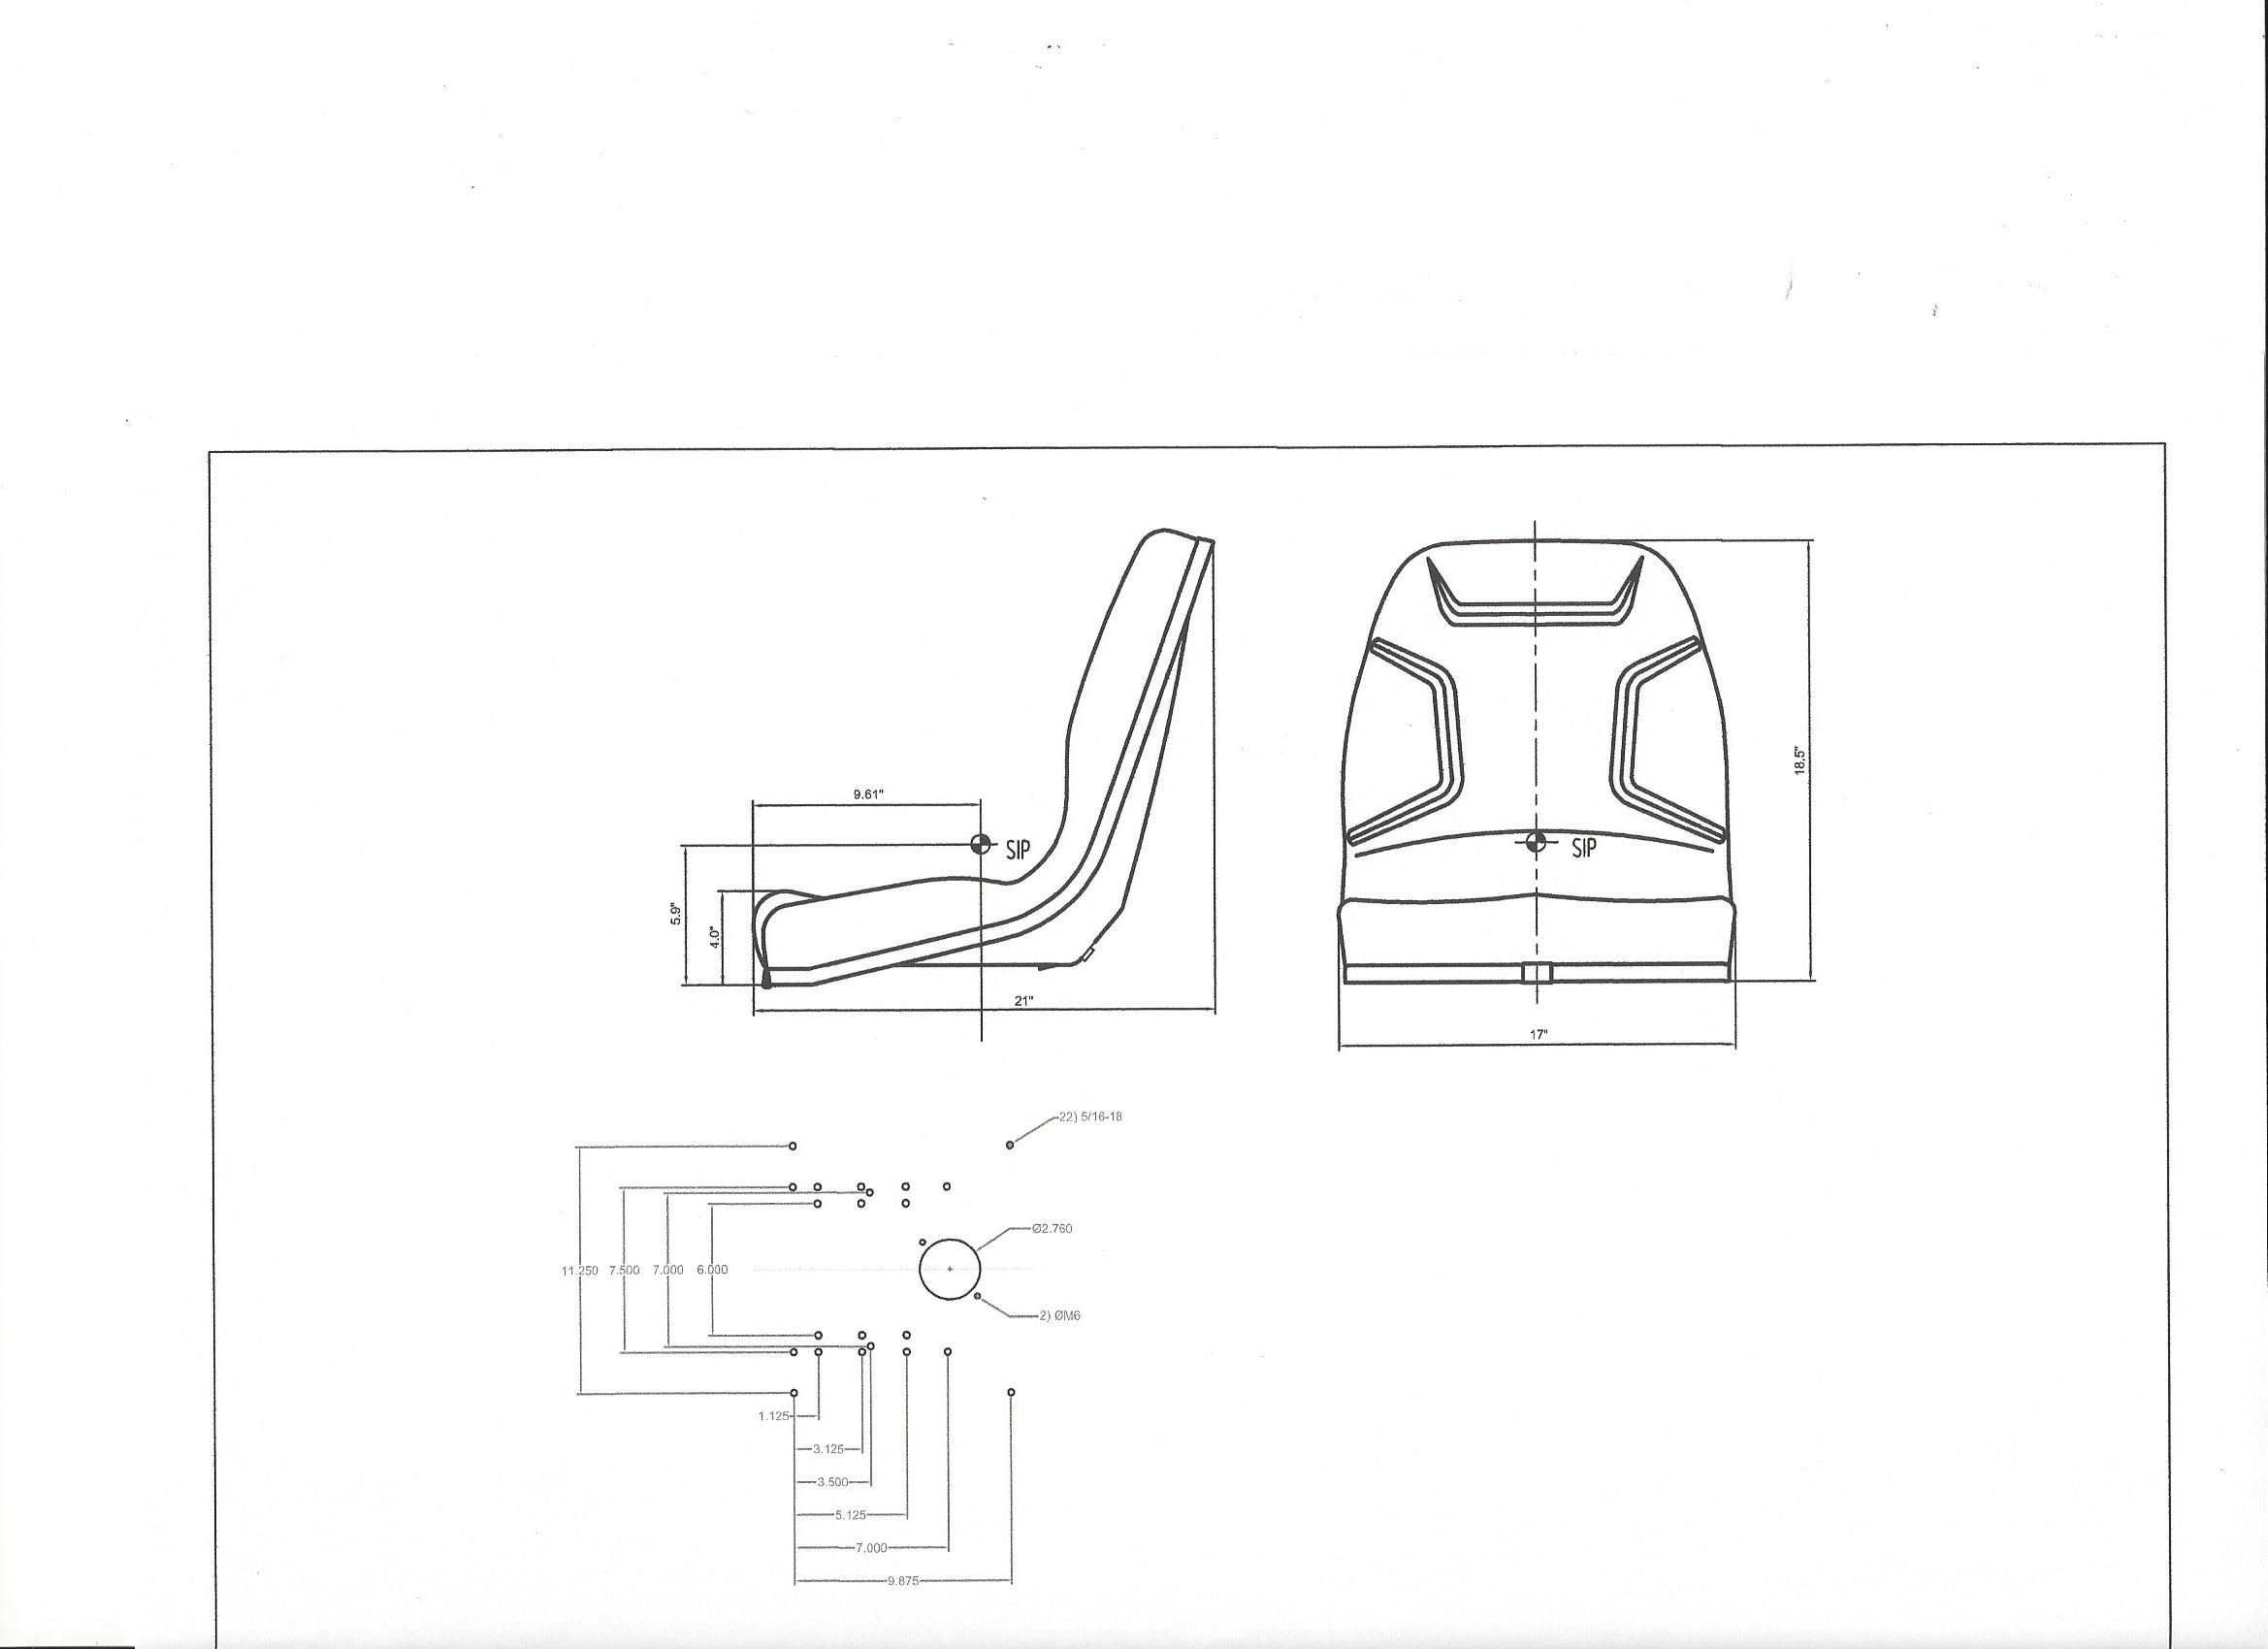 Kubota Bx Parts Diagram